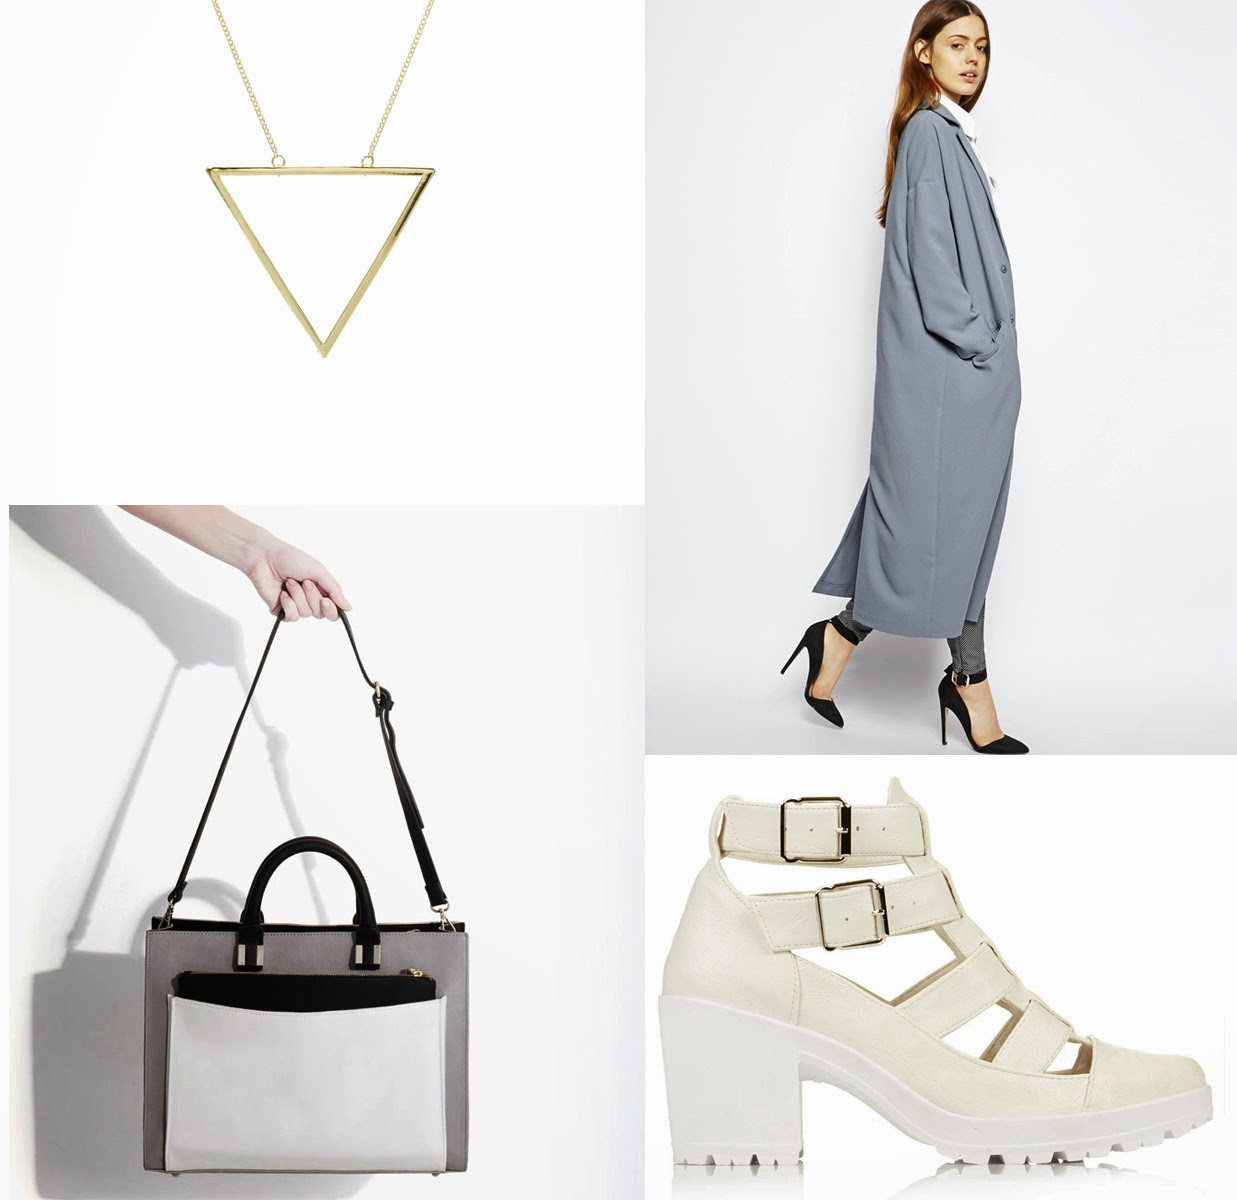 Zara City Bag ASOS Duster Coat ASOS Triangle Necklace Topshop WHite Cut Out Boots